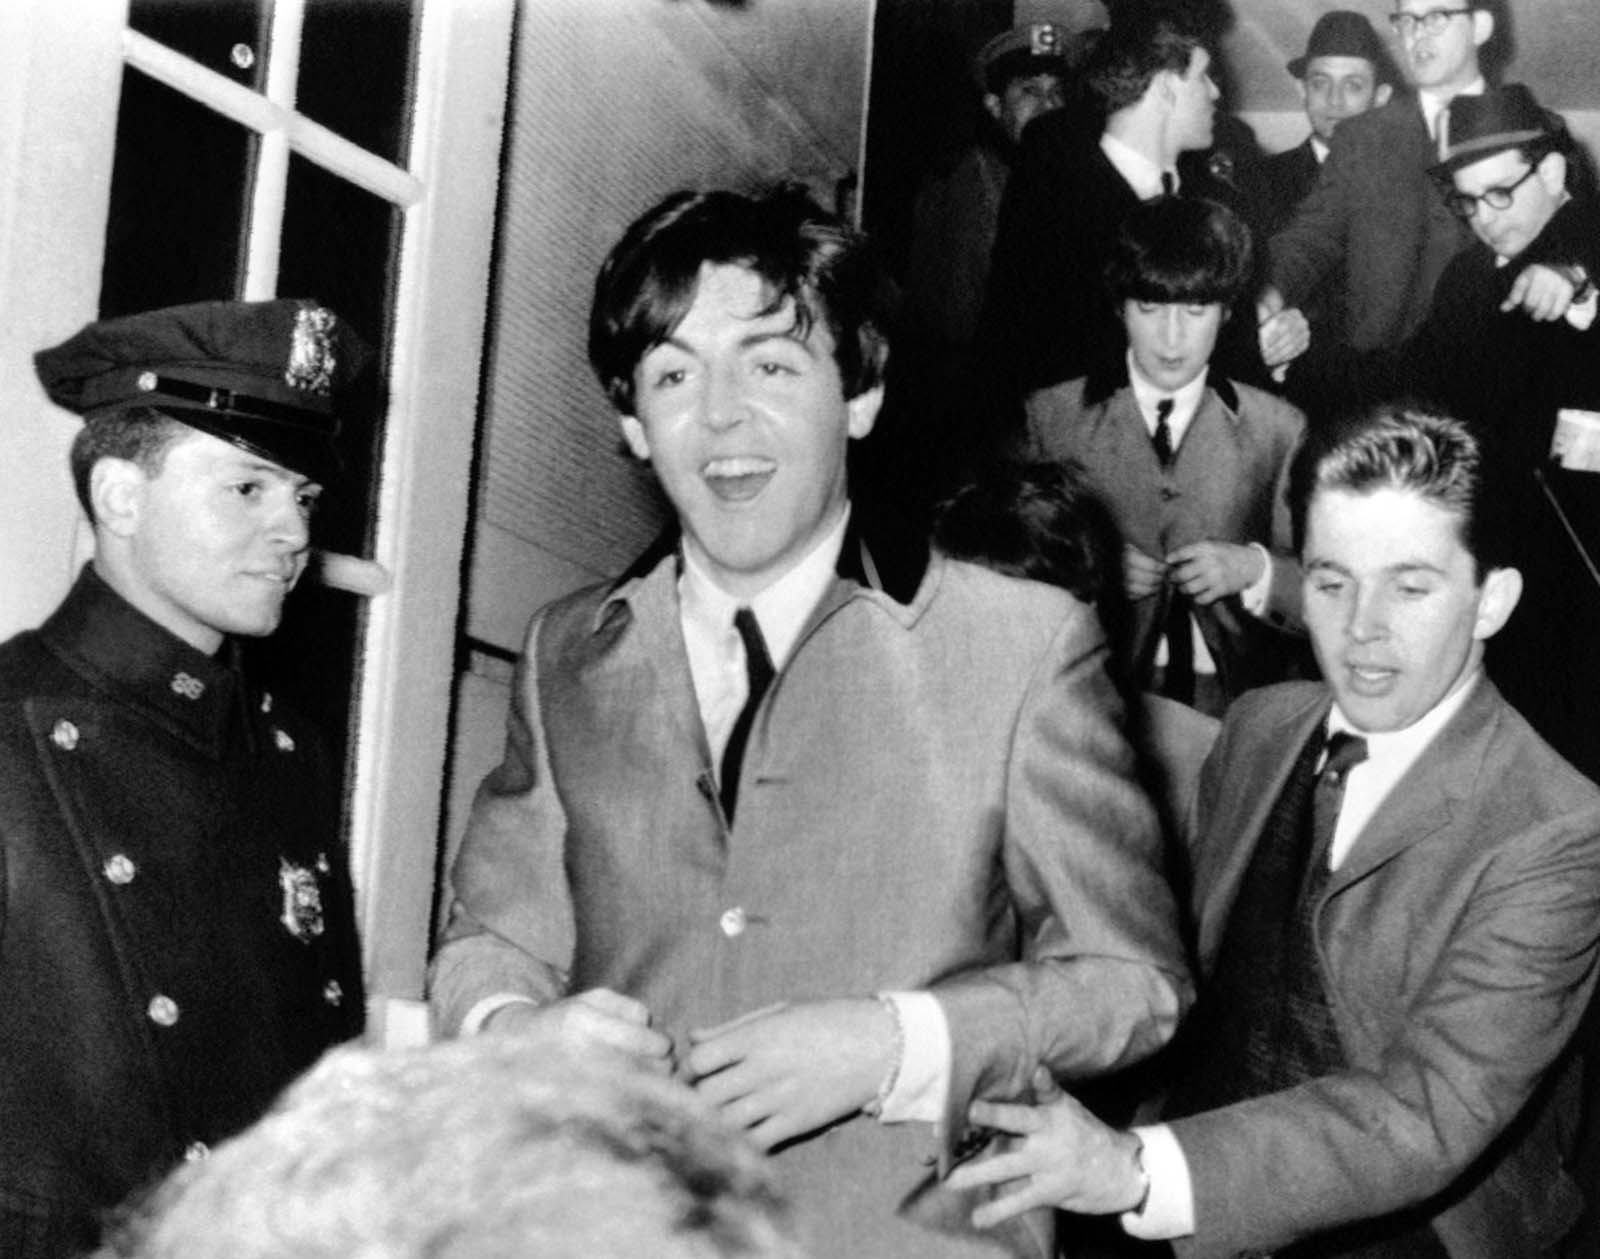 Beatle Paul McCartney flashes a smile as he rushes from New York's Carnegie Hall after two wild performances on February 12, 1964. Behind him is band mate John Lennon.